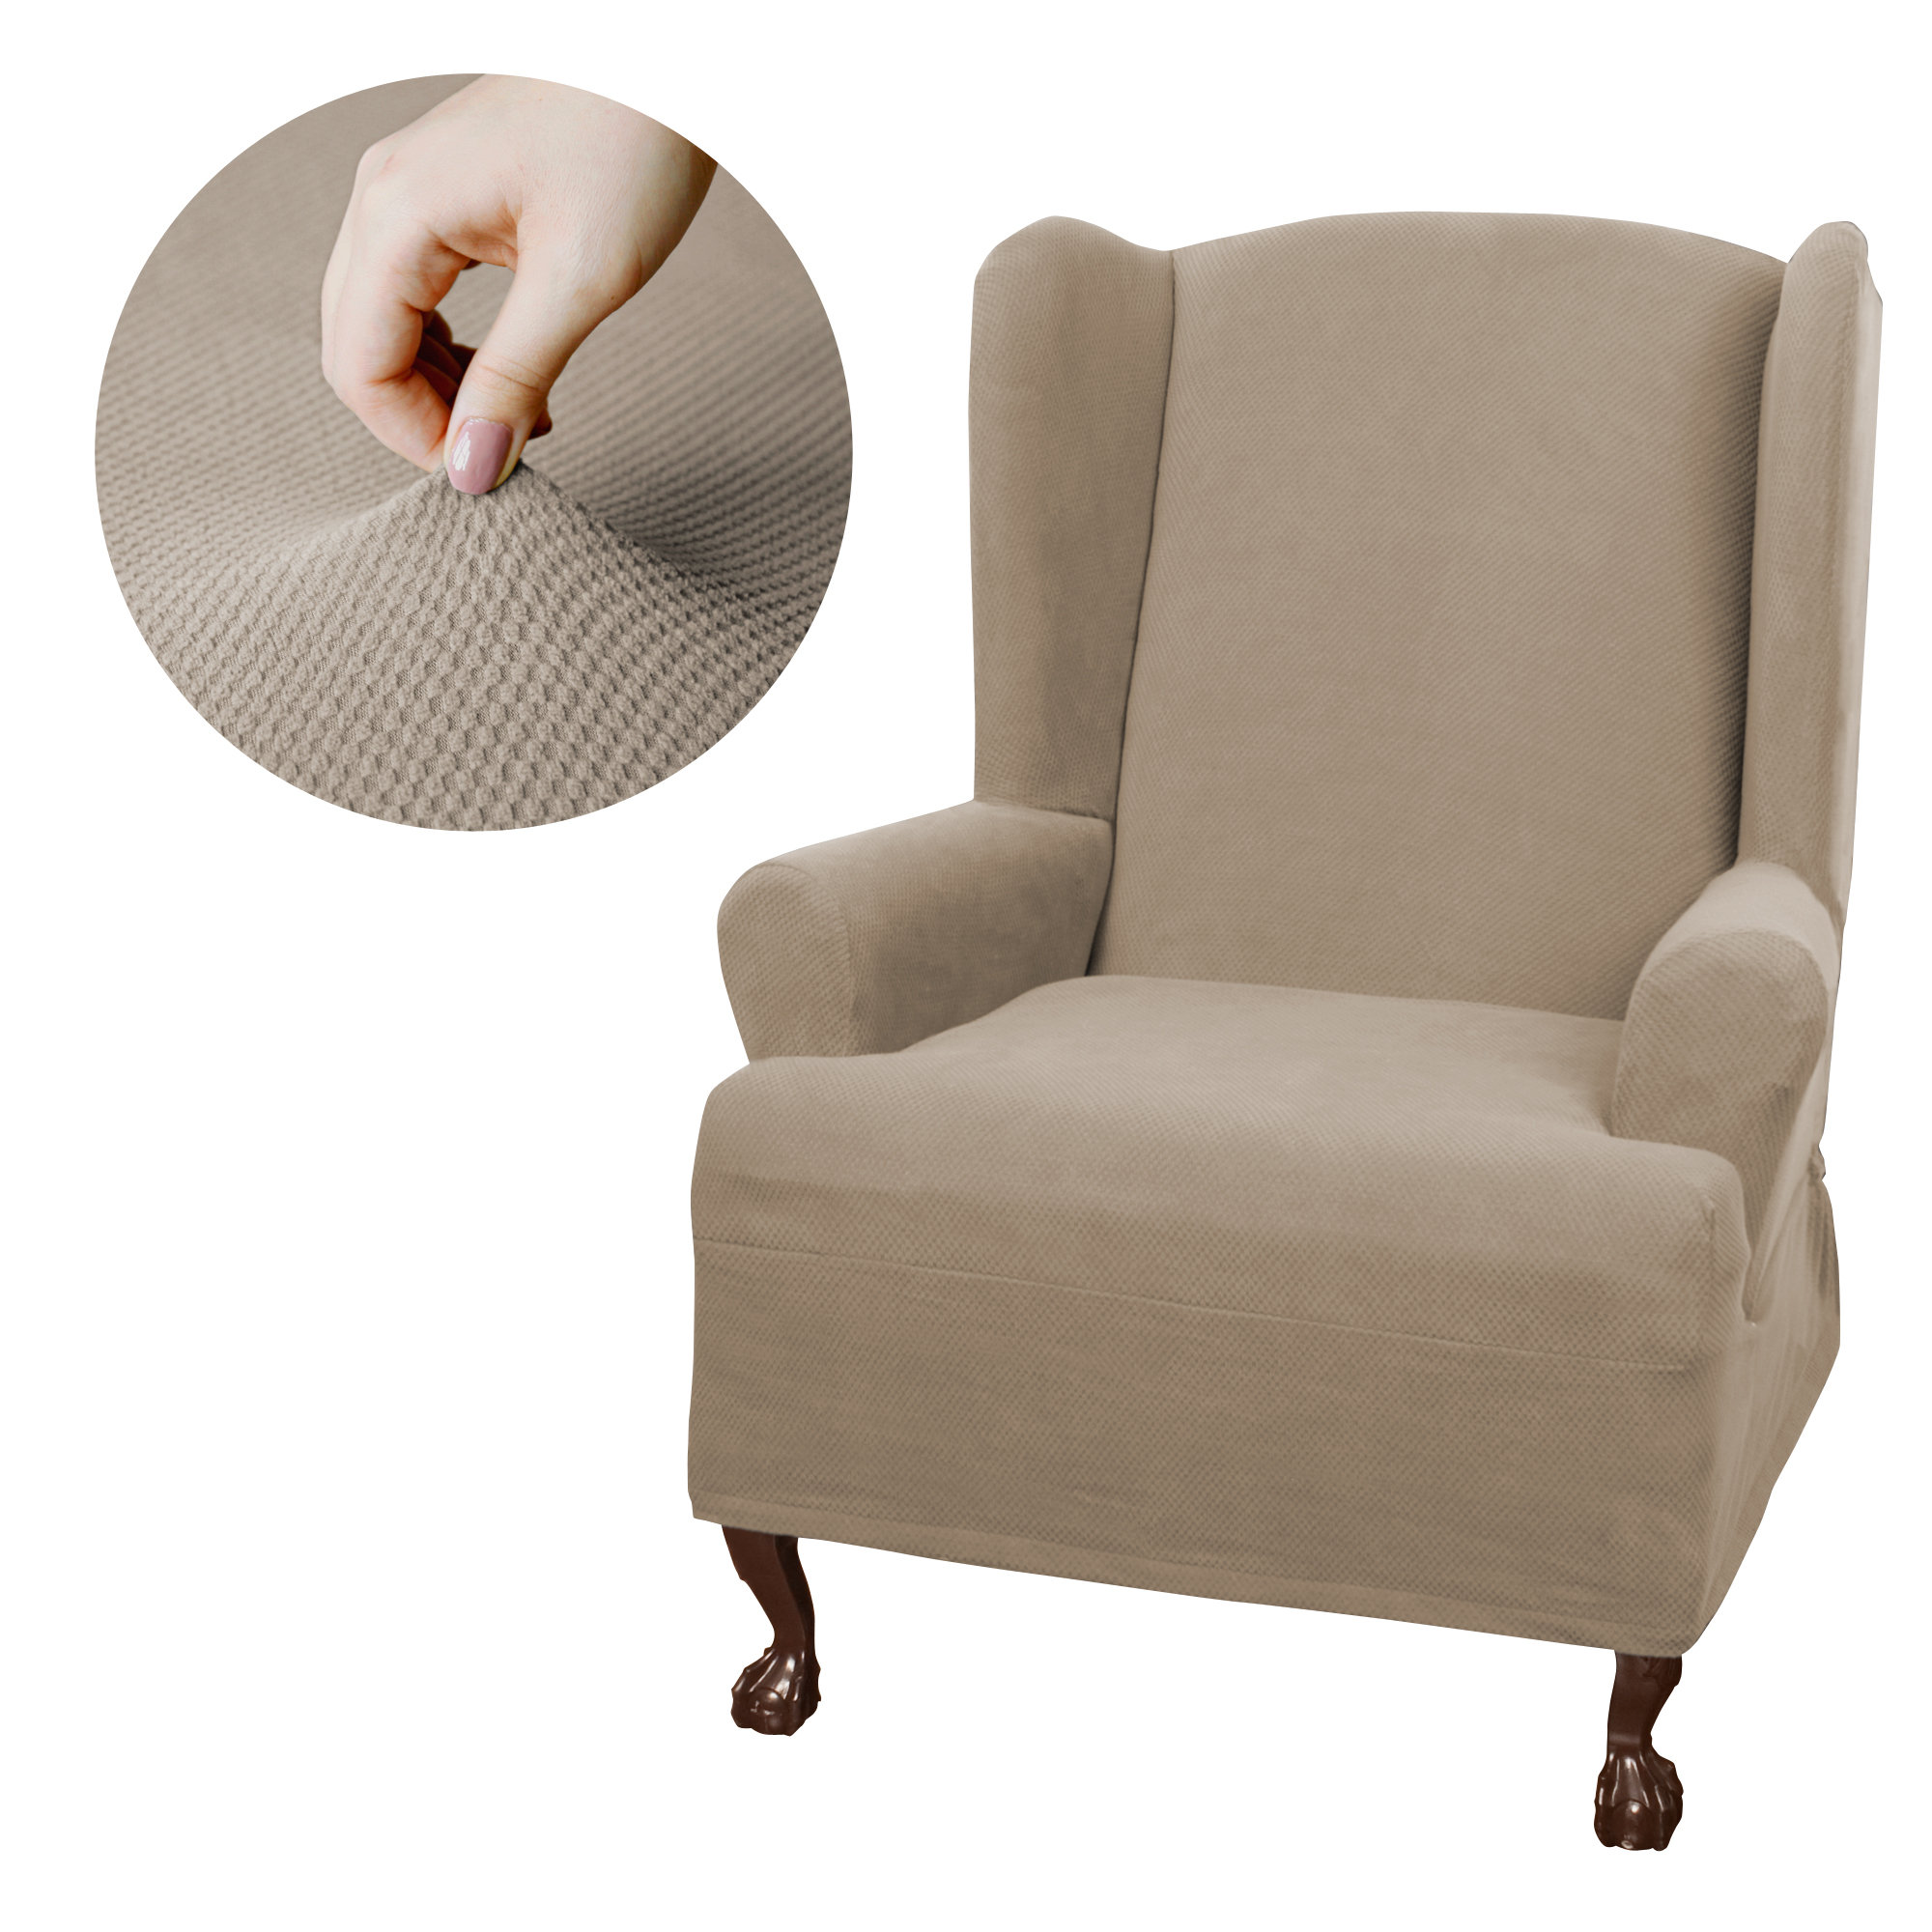 Wing Chair Covers   Walmart.com